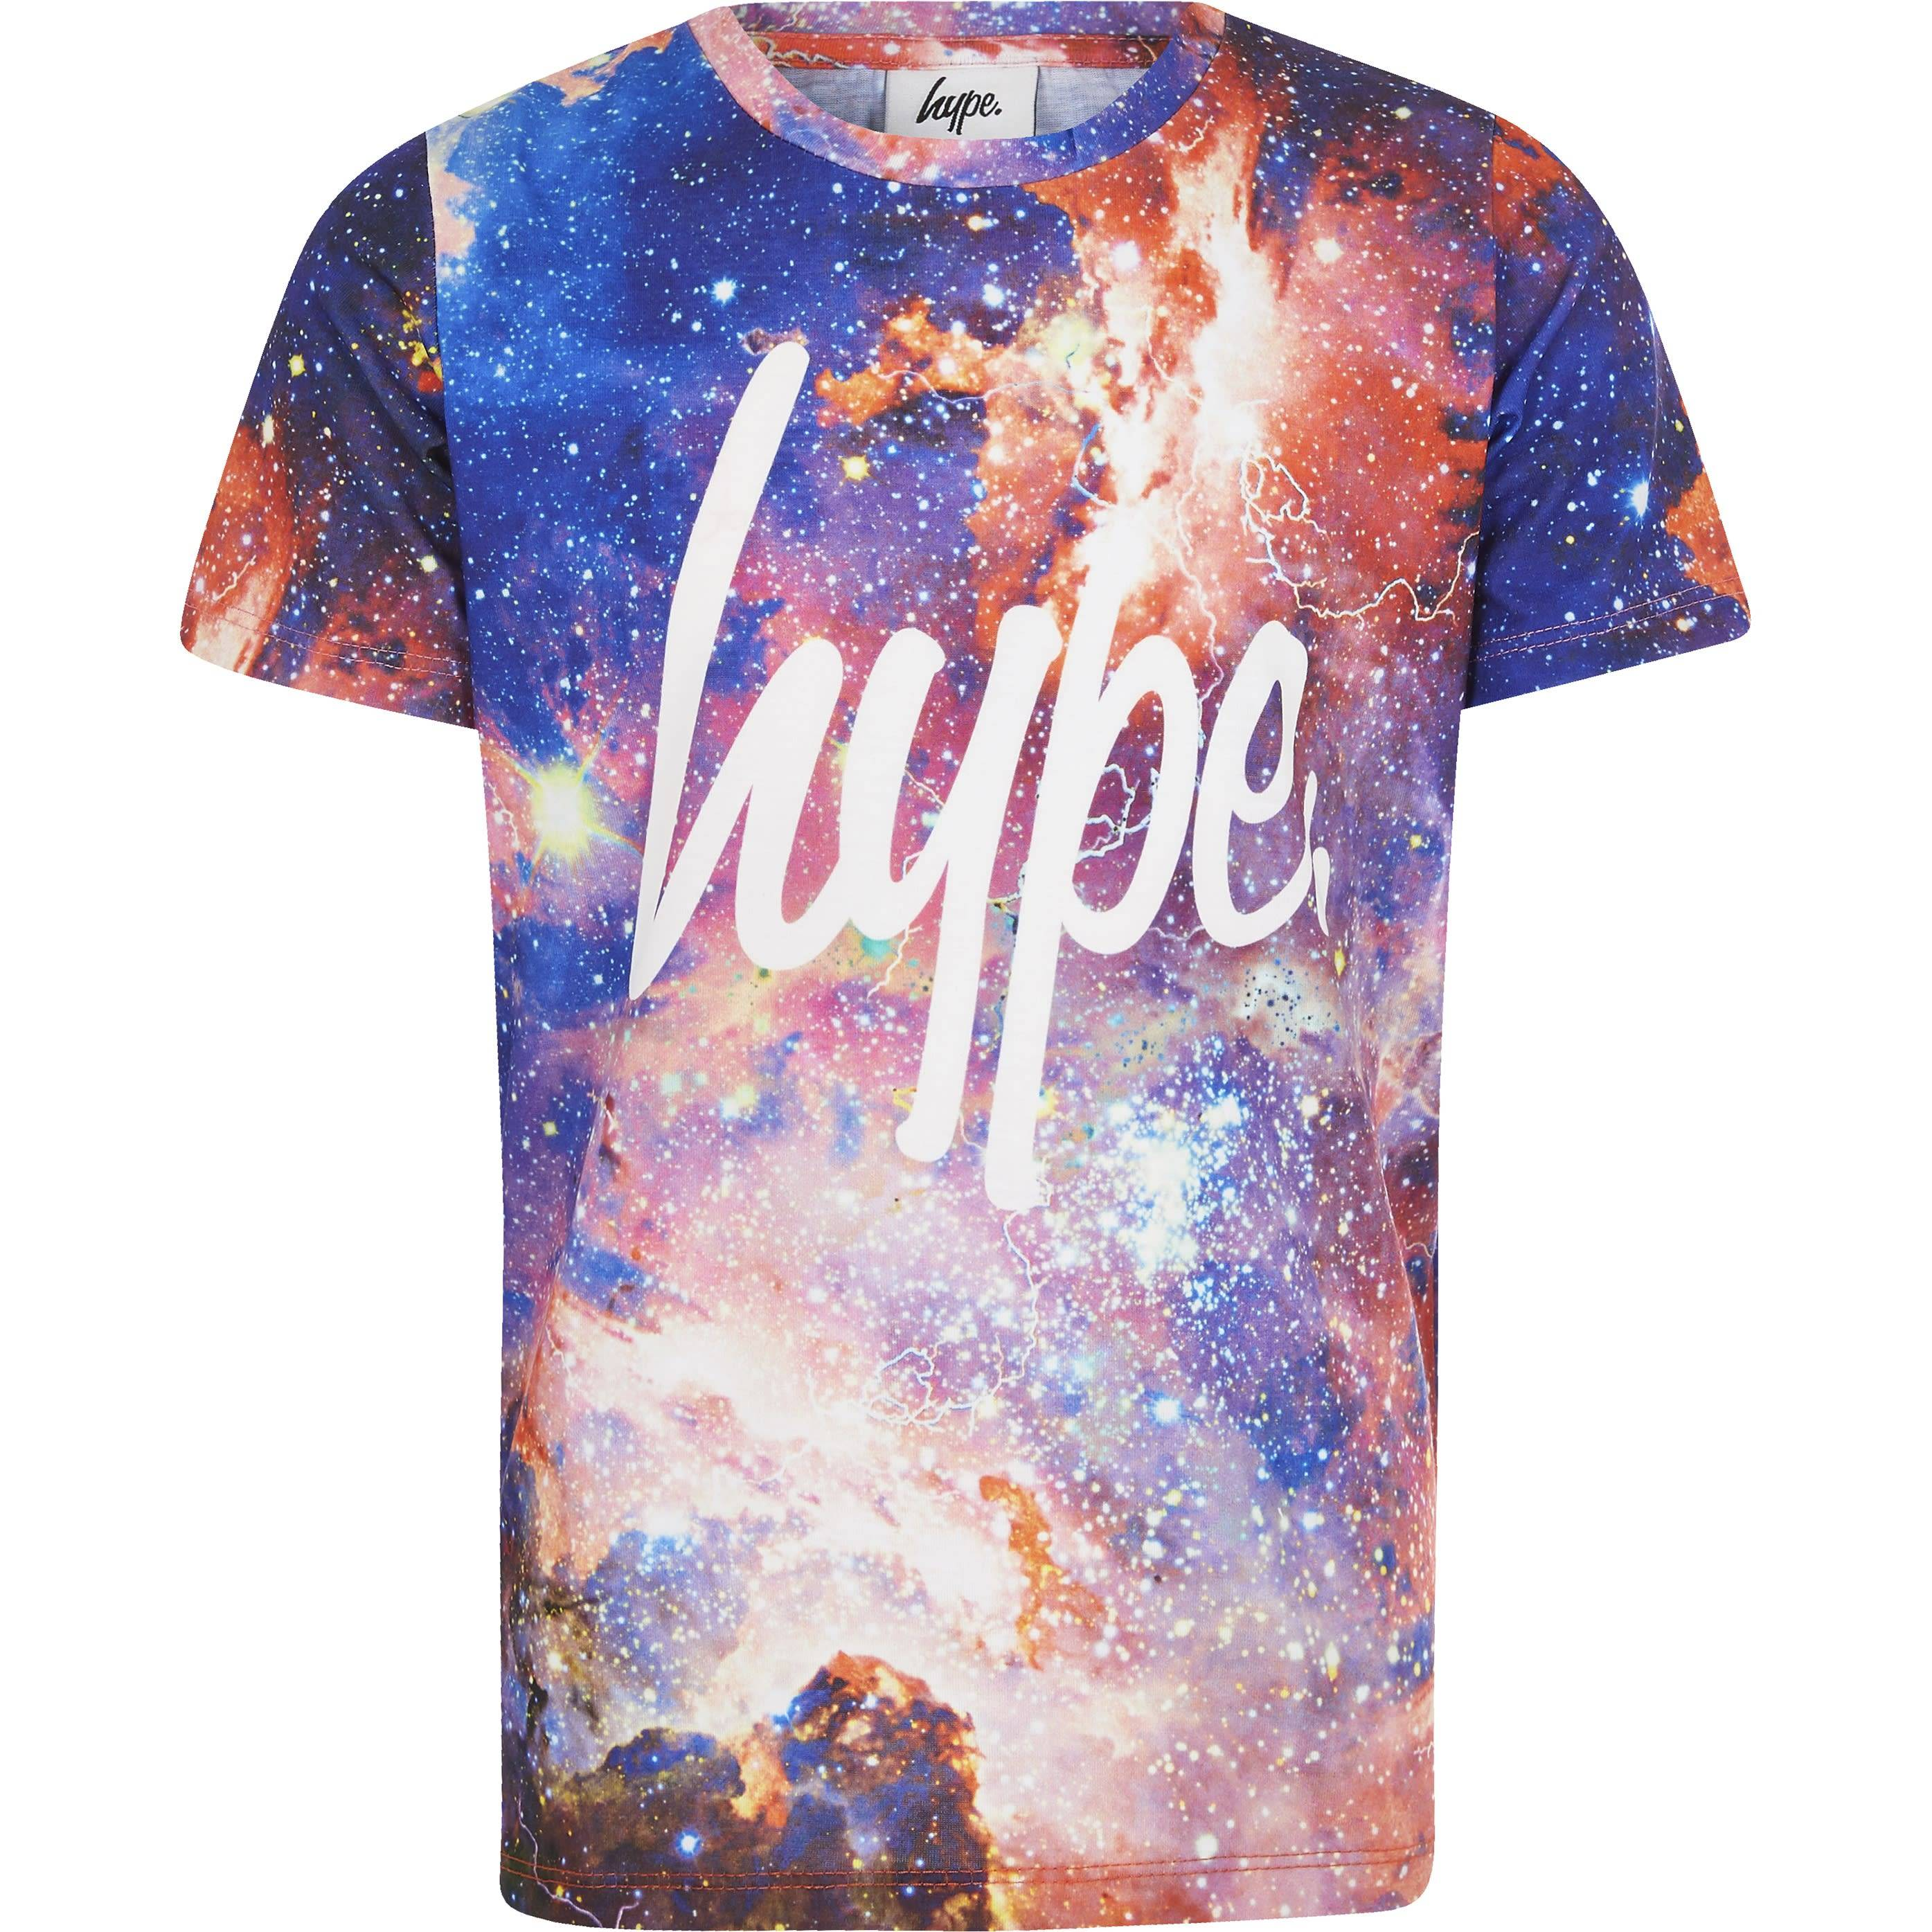 Hype Boys Red Hype space print T-shirt (5-6 Yrs)